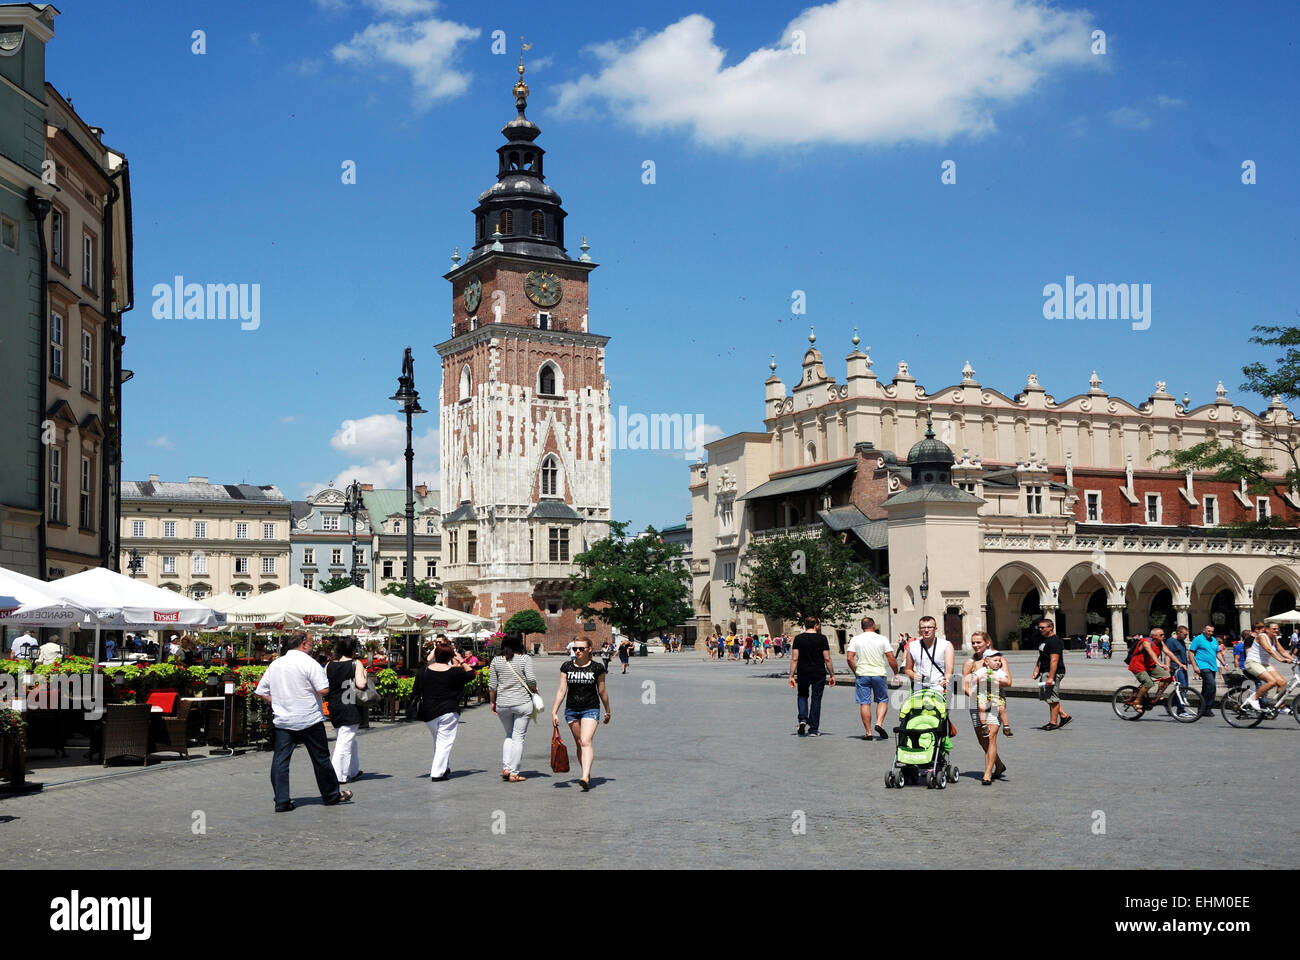 Main Square of Krakow in Poland with Town Hall Tower and Cloth Halls. - Stock Image